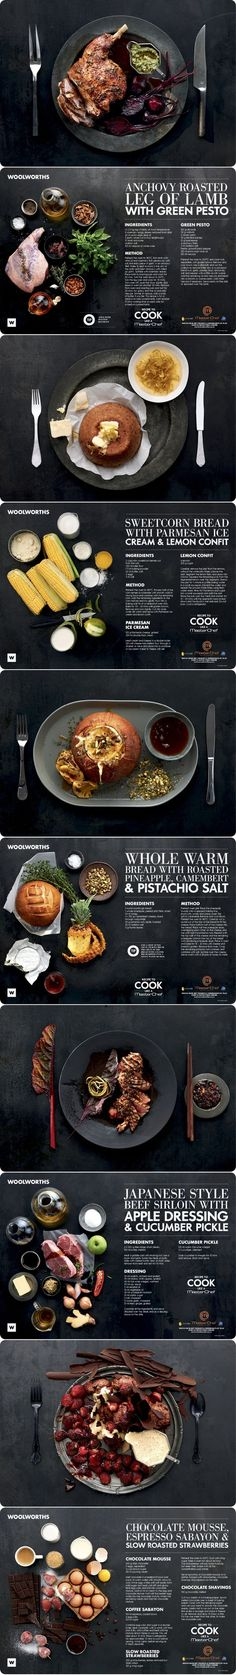 food pages // Laura Wall on behance: